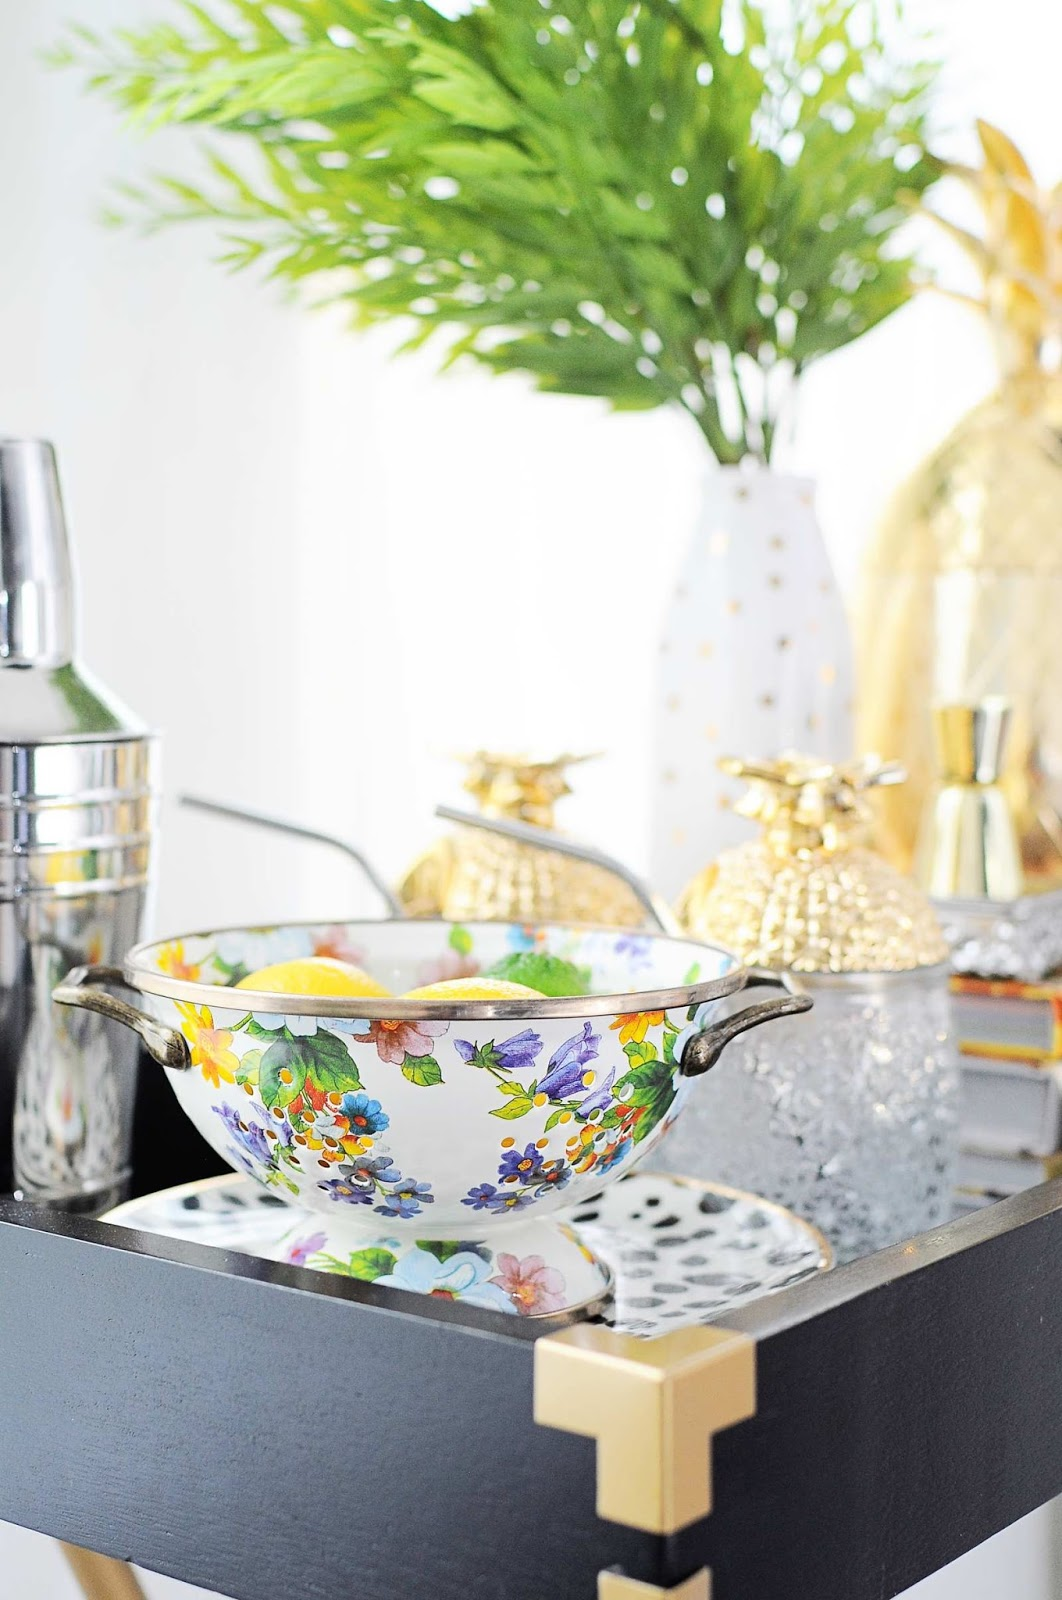 A butler tray is used as a bar in a chic and stylish black, white and gold dining space.